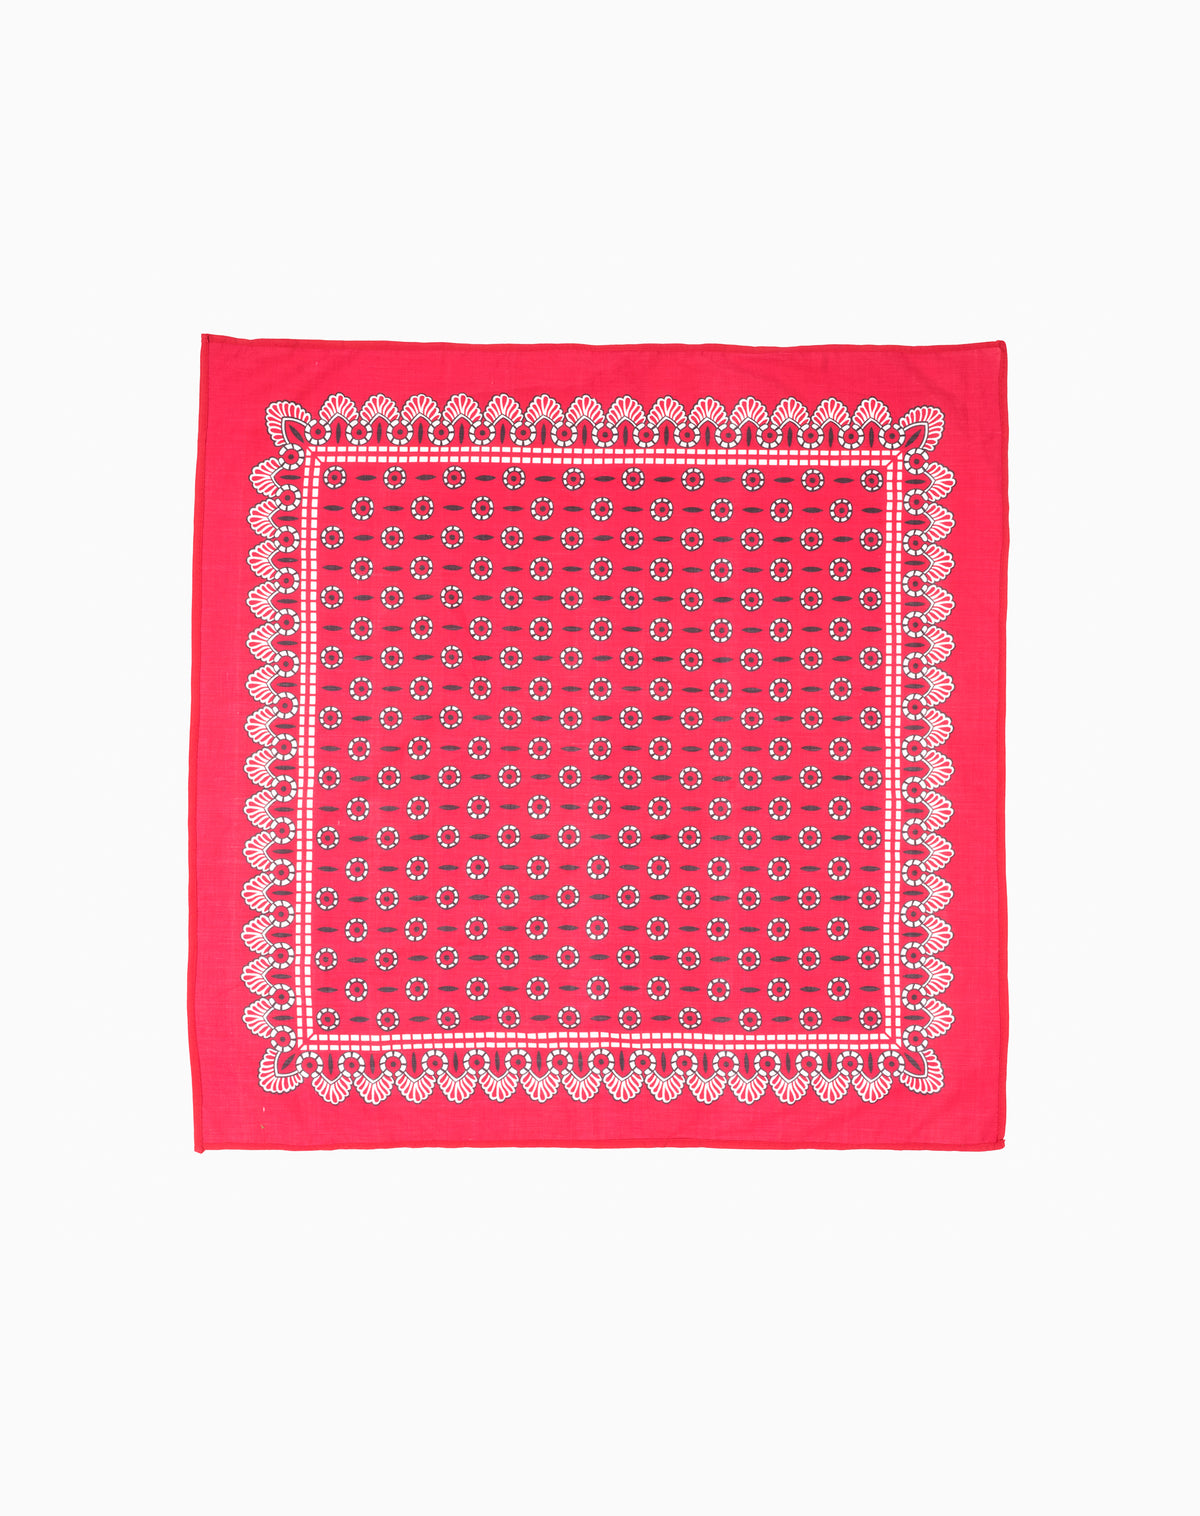 Reef Bandana in Red